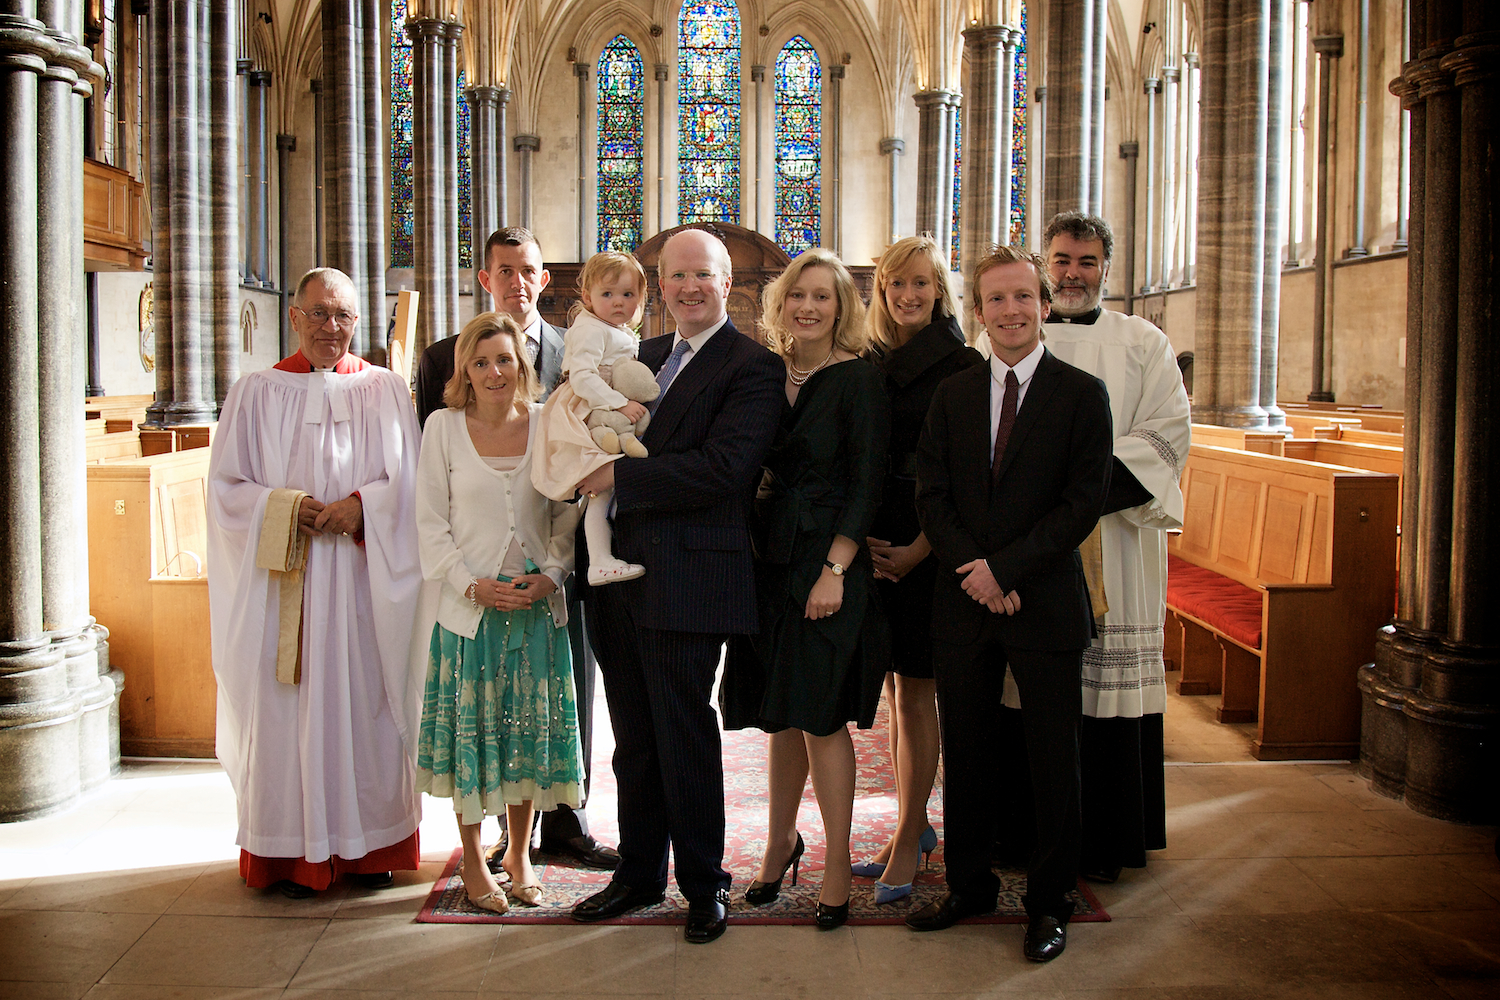 Temple-Church-Group-Shot.jpg